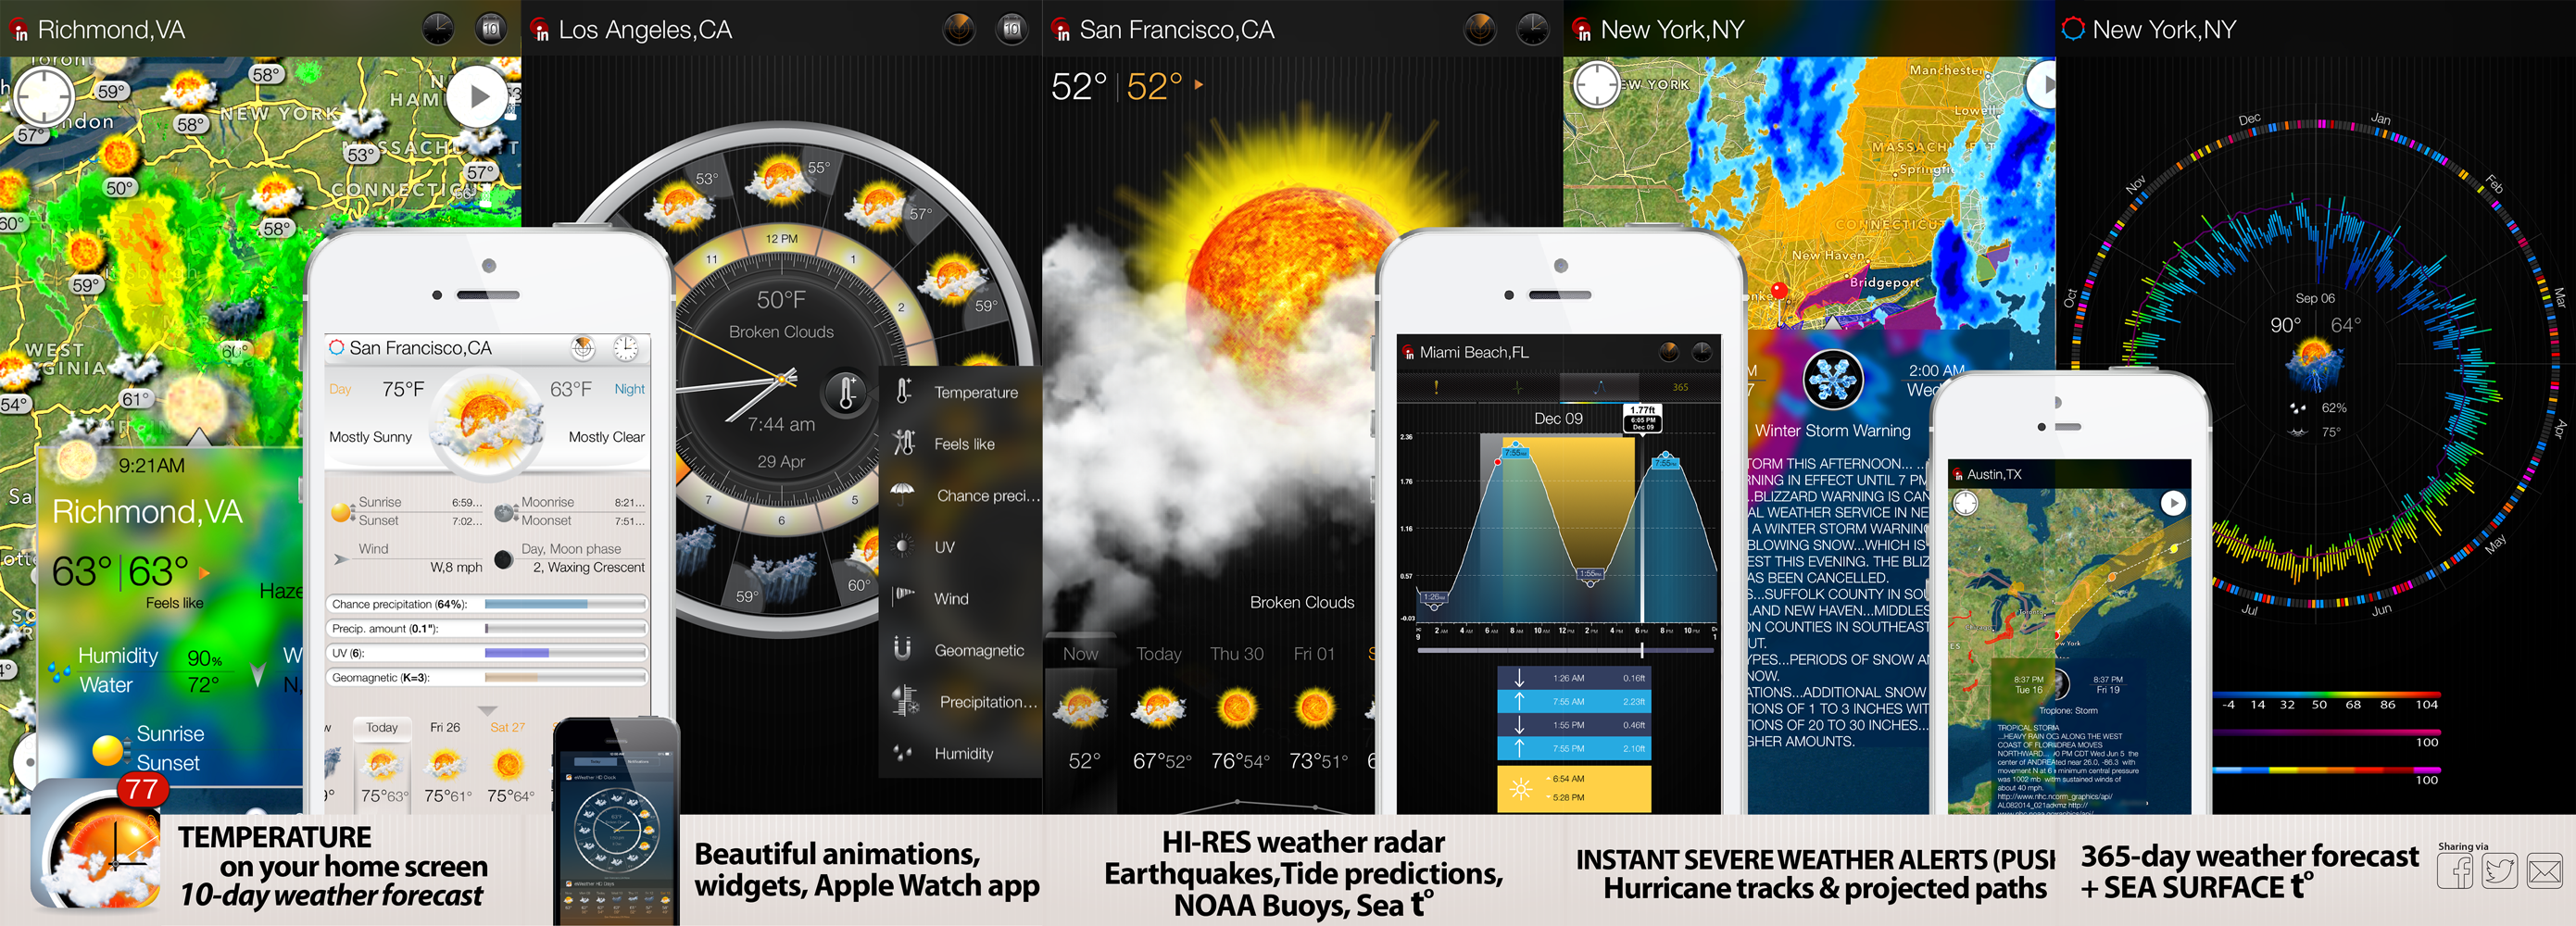 eWeather HD for iPhone and iPad specifically designed to